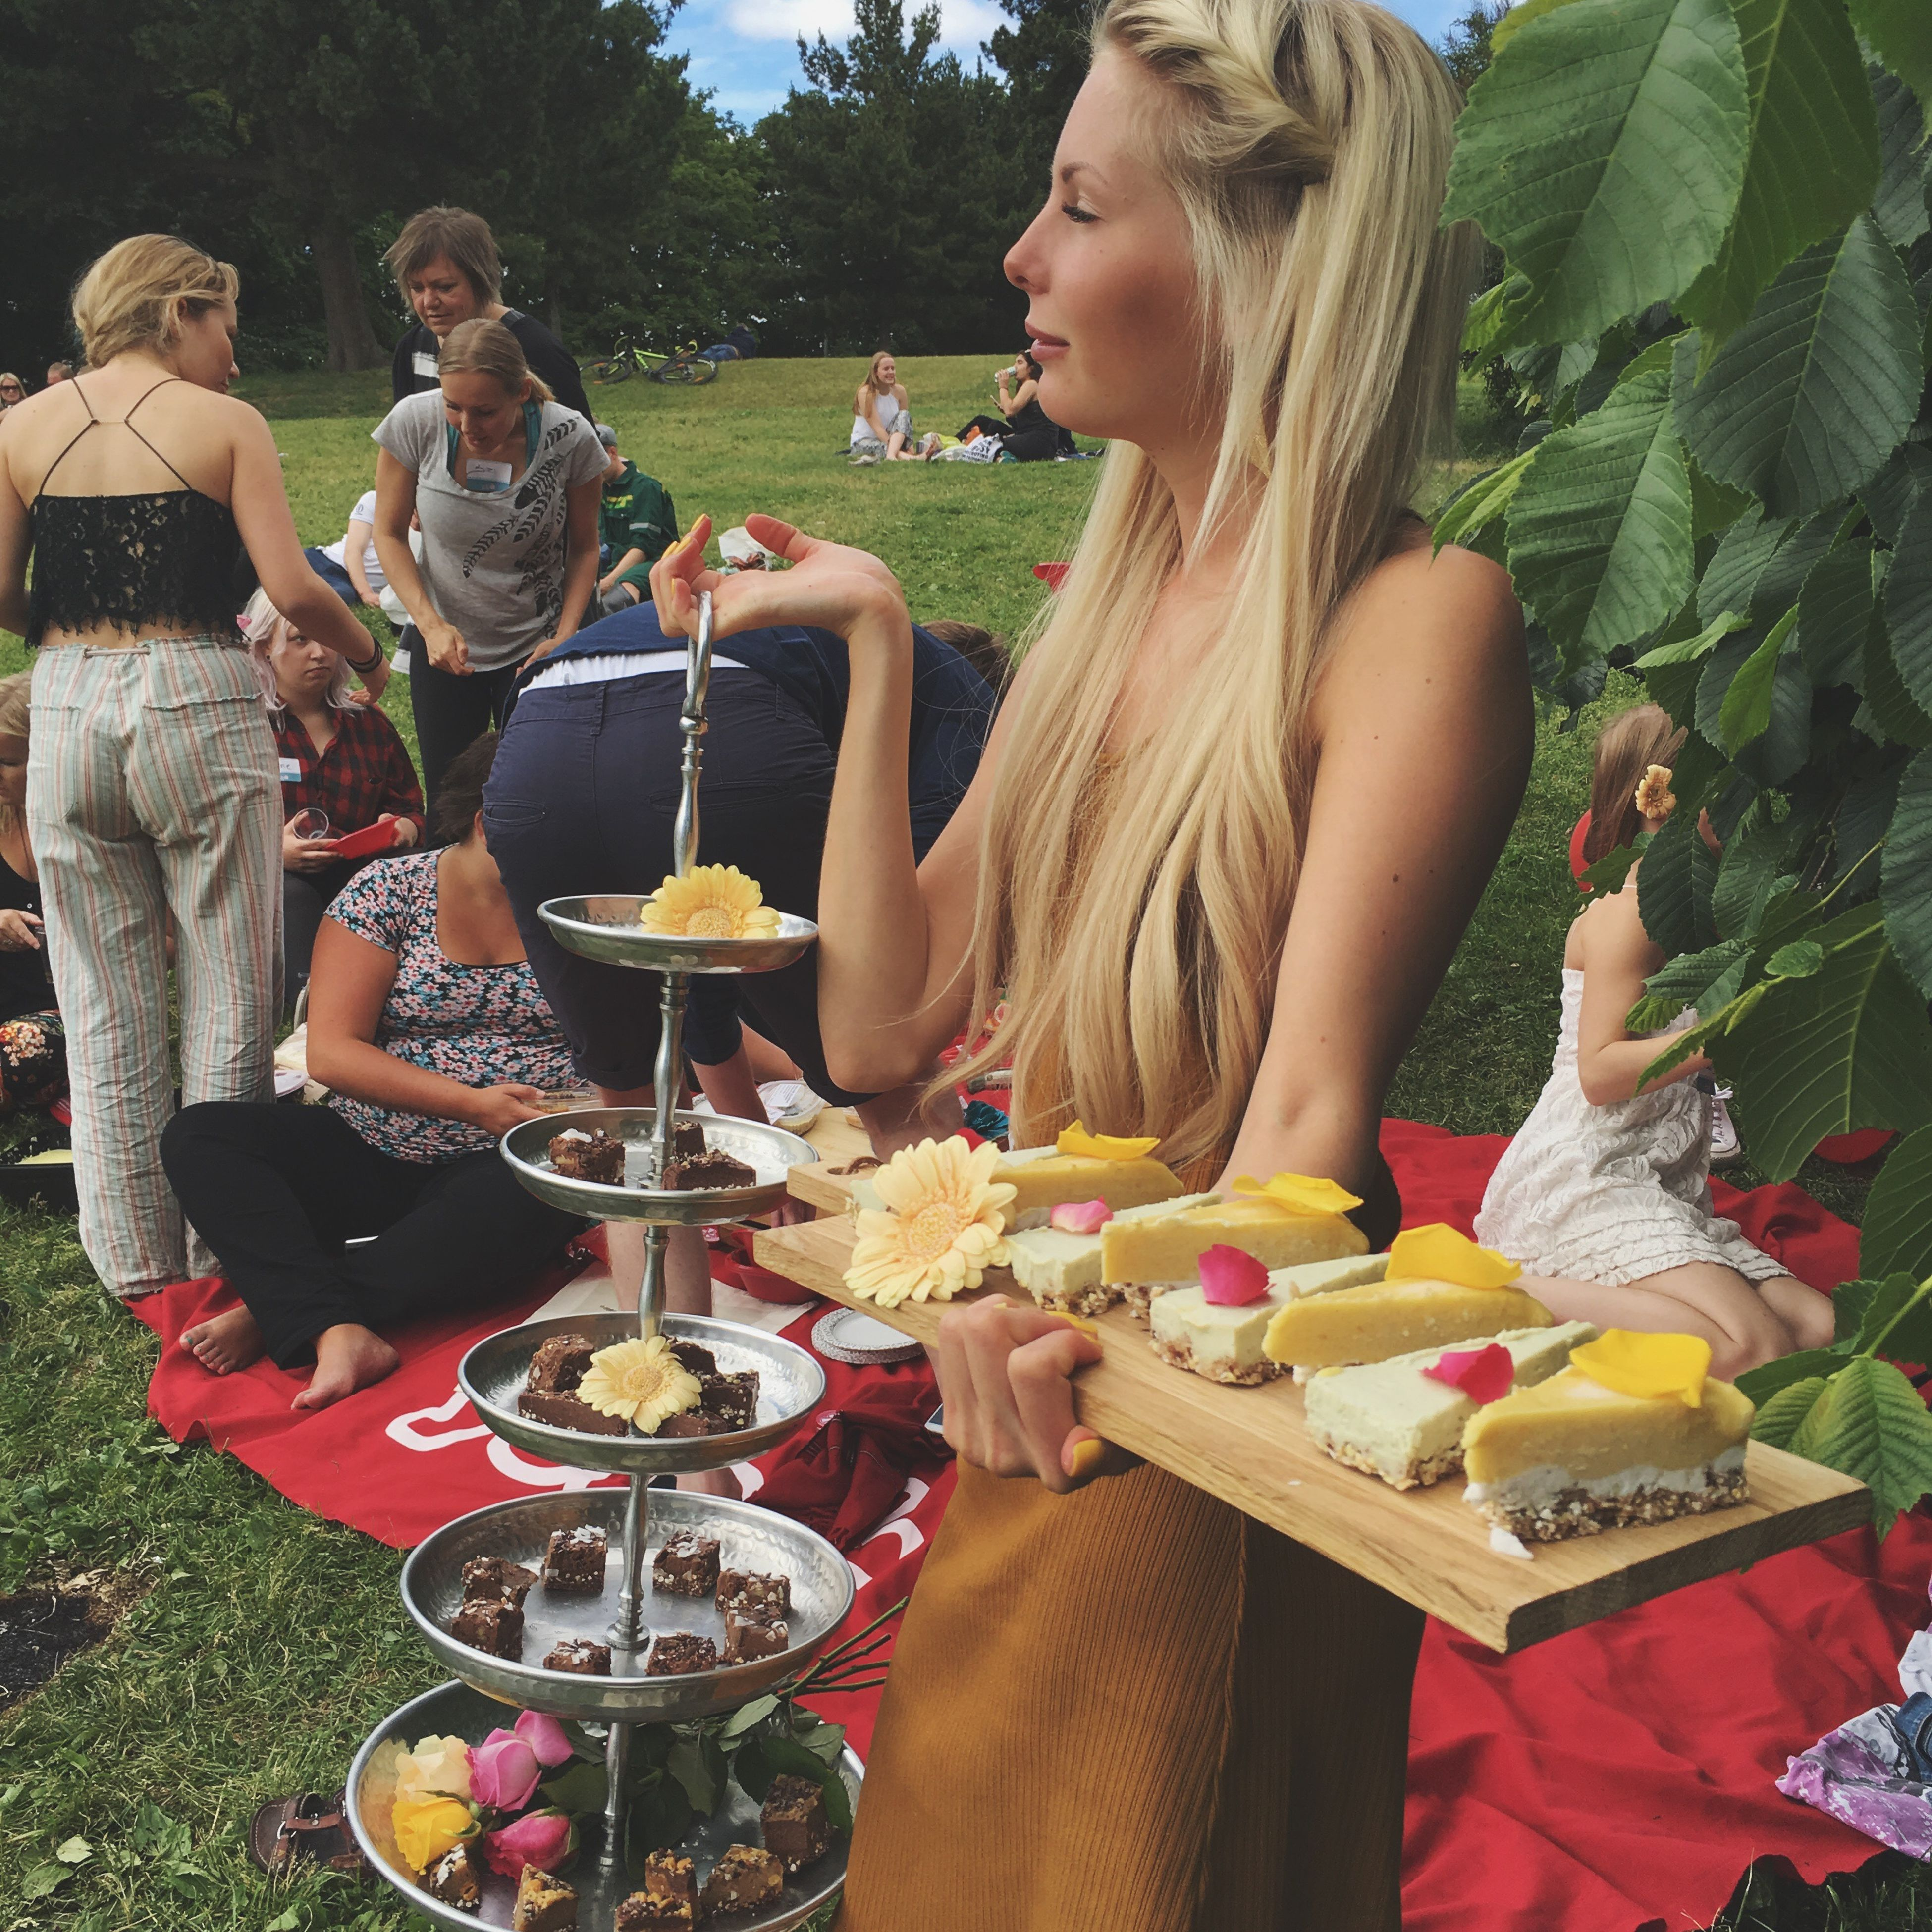 lifestyles, leisure activity, person, casual clothing, childhood, elementary age, food and drink, holding, girls, sitting, togetherness, boys, food, happiness, enjoyment, freshness, smiling